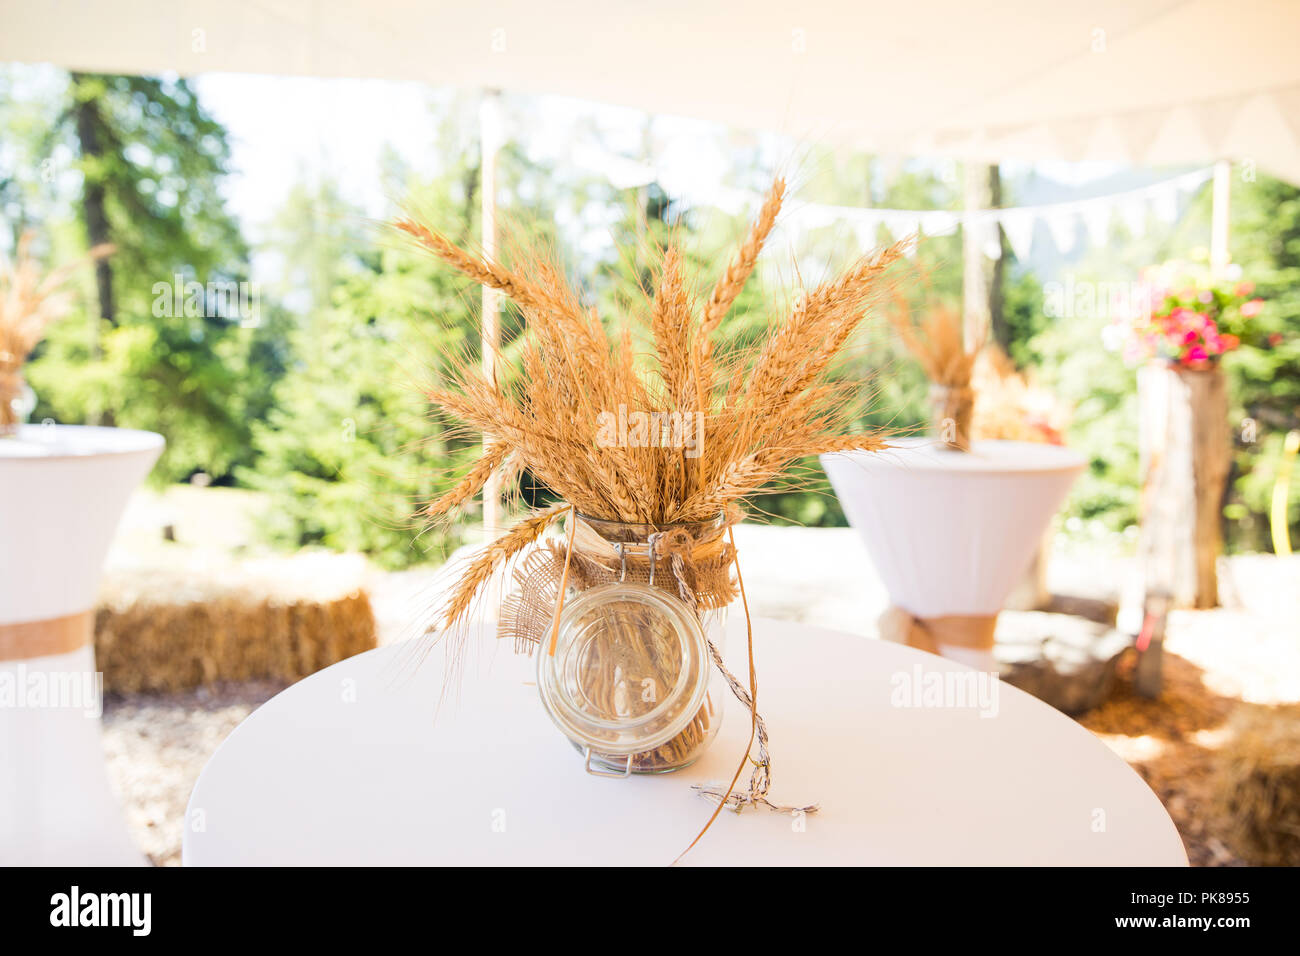 Dried Wheat Ears in Glass Conserve Jar in Shabby Chic Rustic Wedding ...